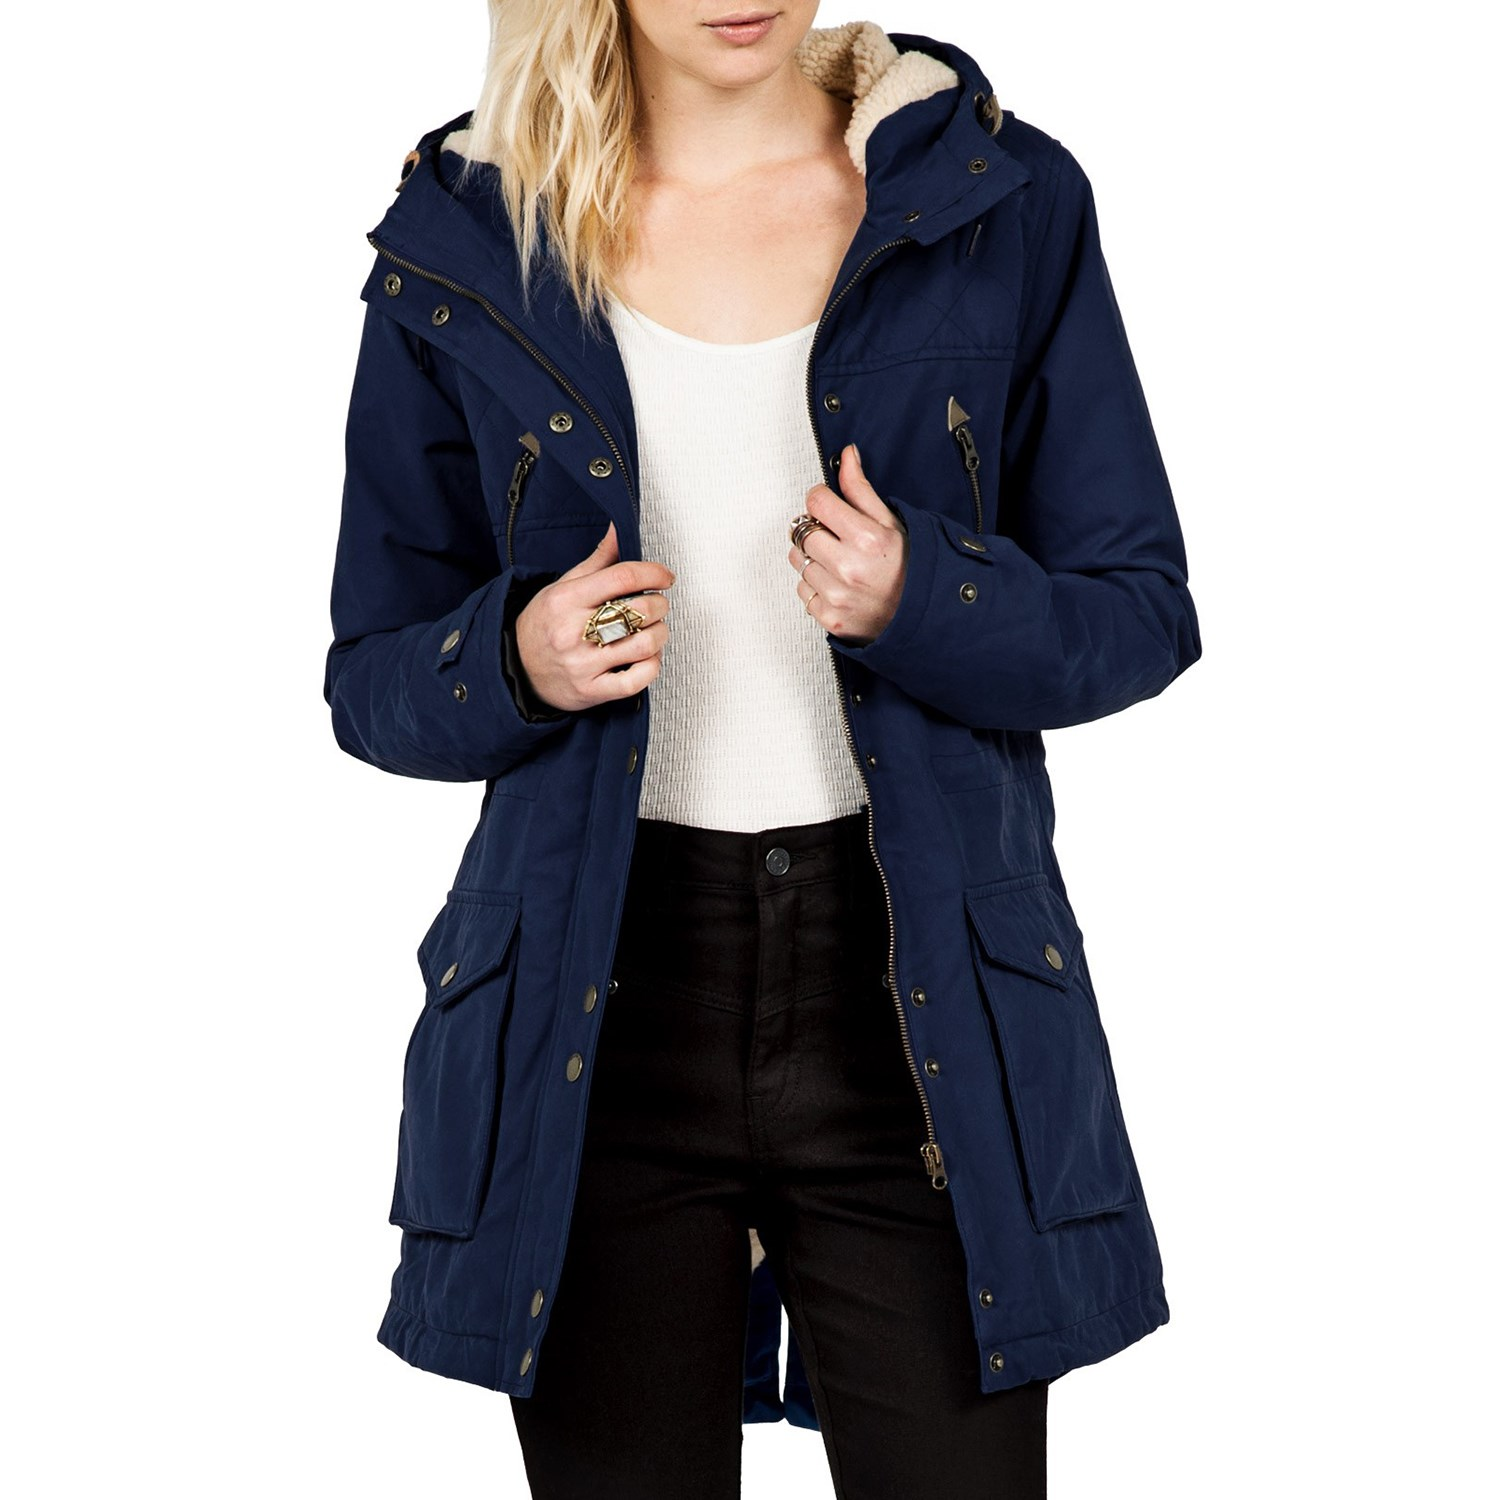 Blue Parka Coat Ladies - Coat Nj